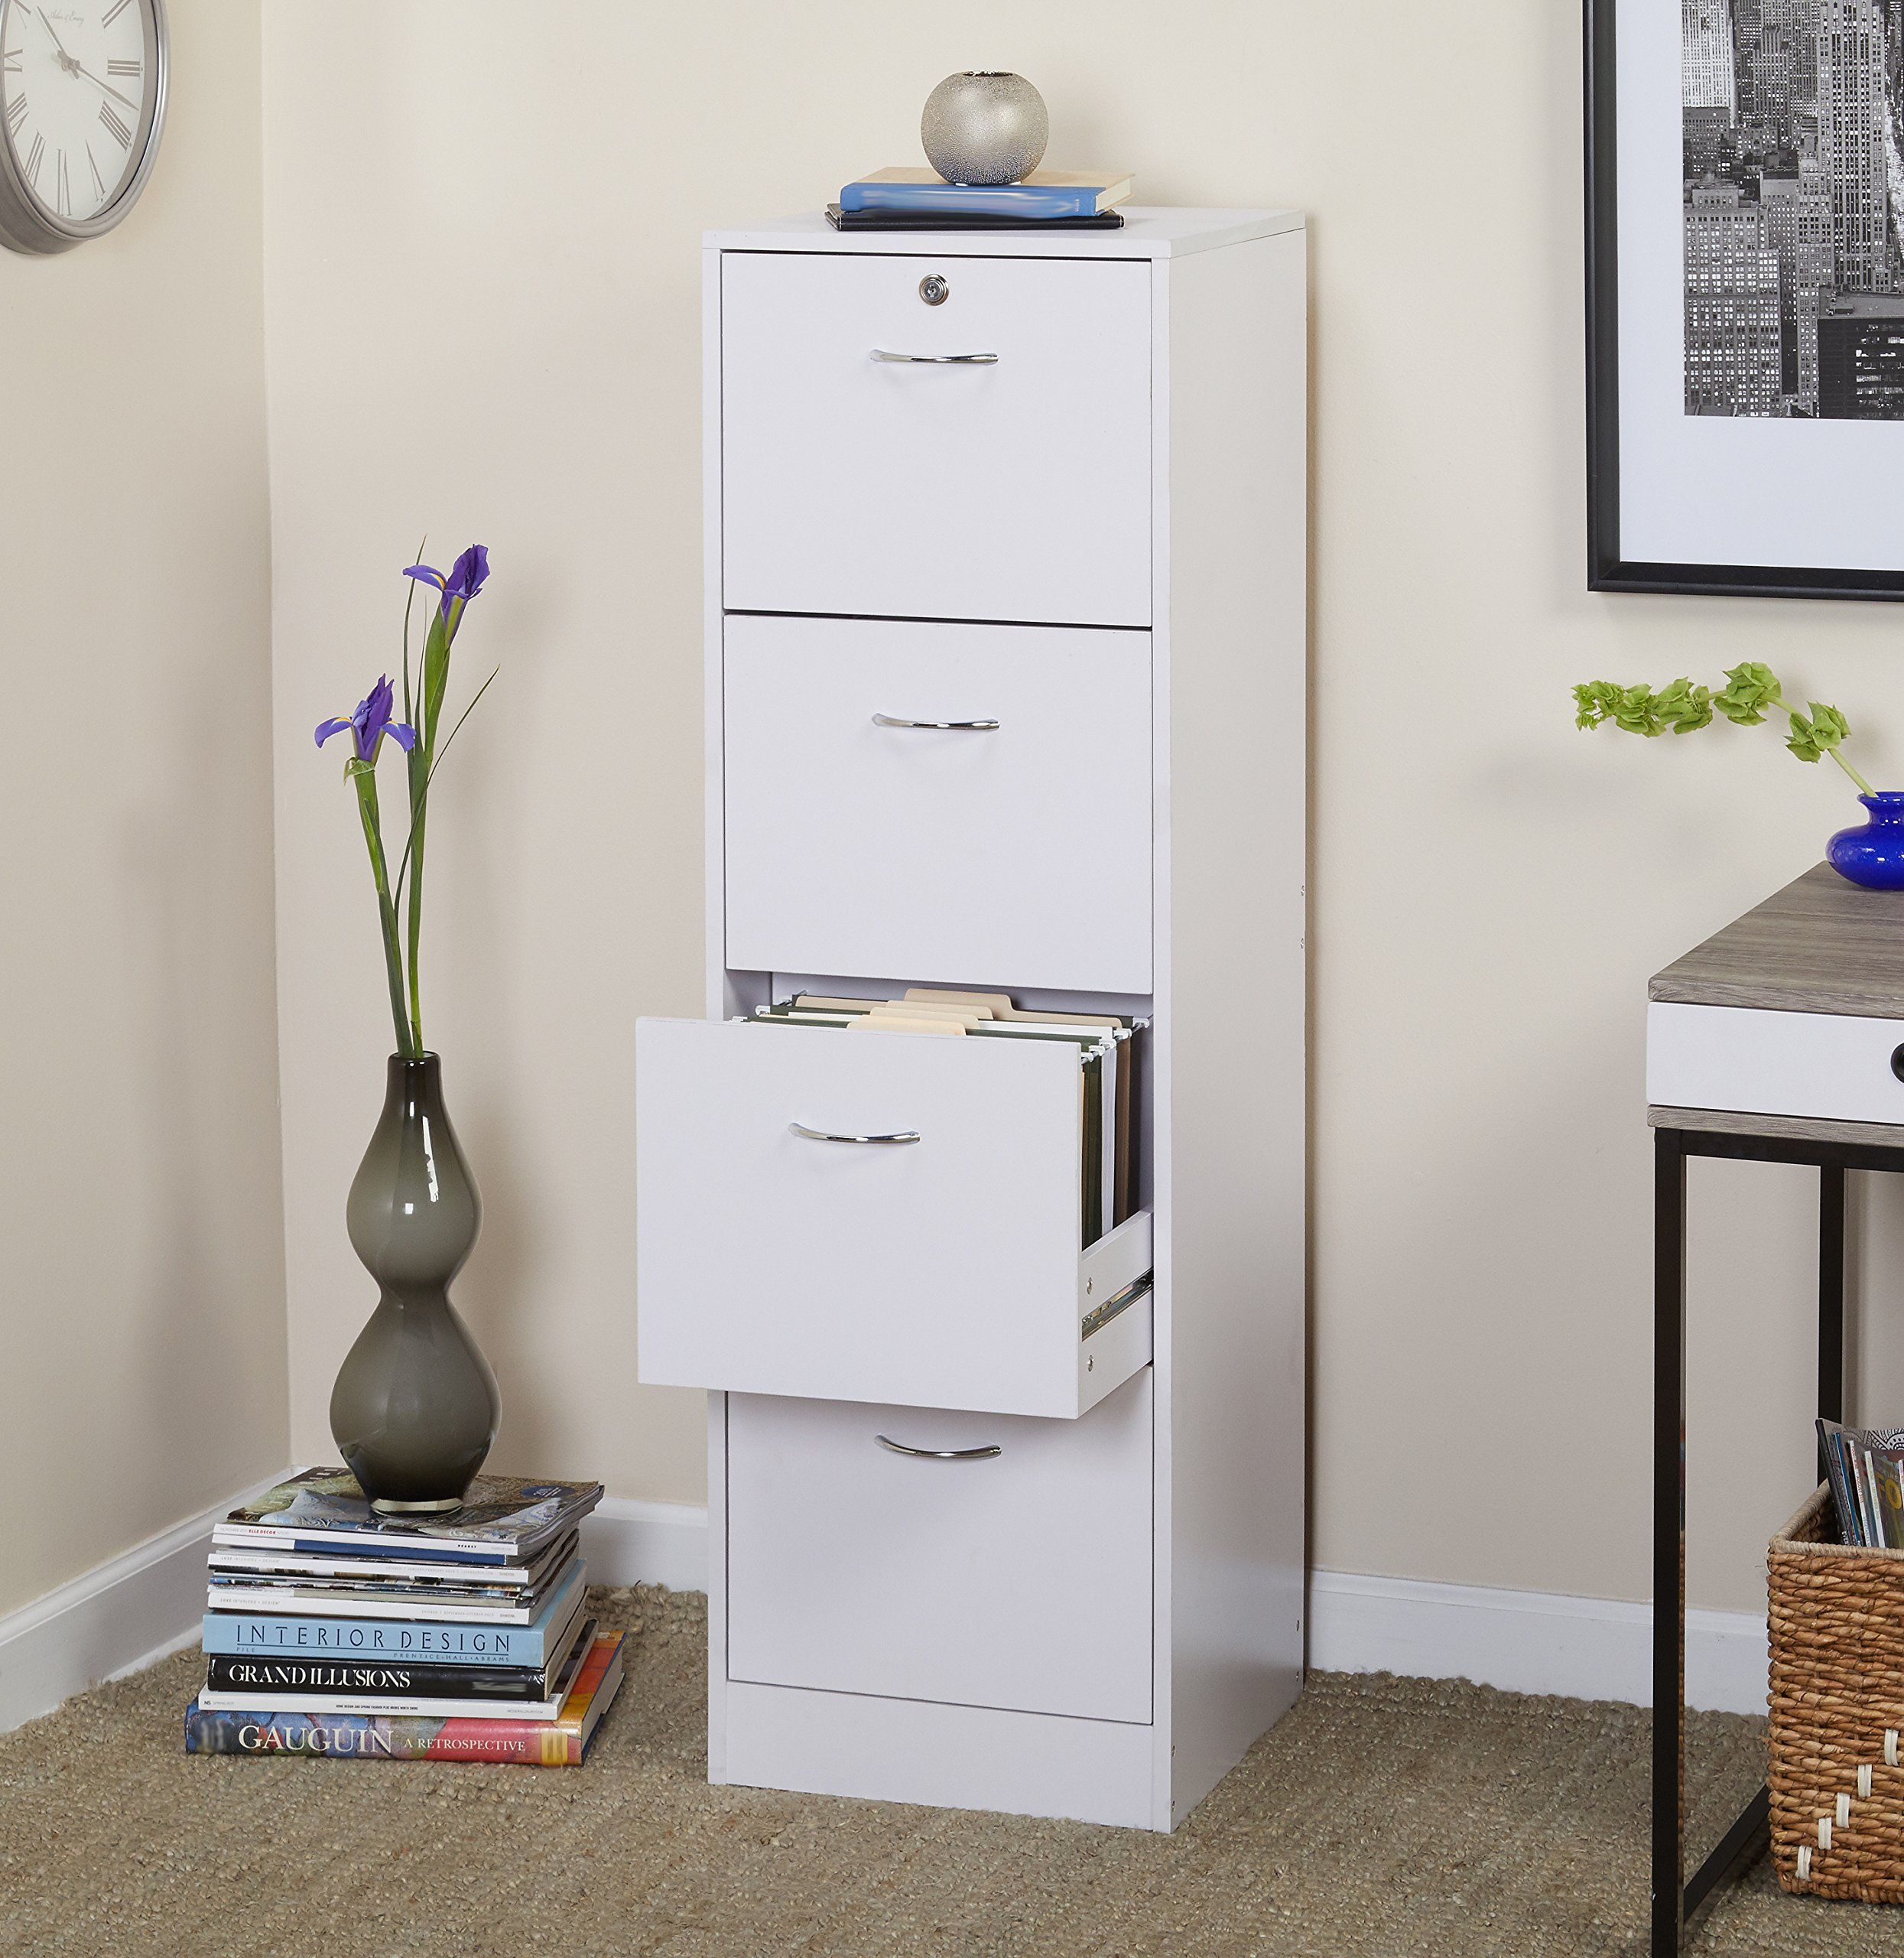 Four Drawer Vertical Wood Lockable File Cabinet Safeguards Documents And  Keeps Them Organized Prevents Your Papers From Fading Made Of Durable  Particleboard ...